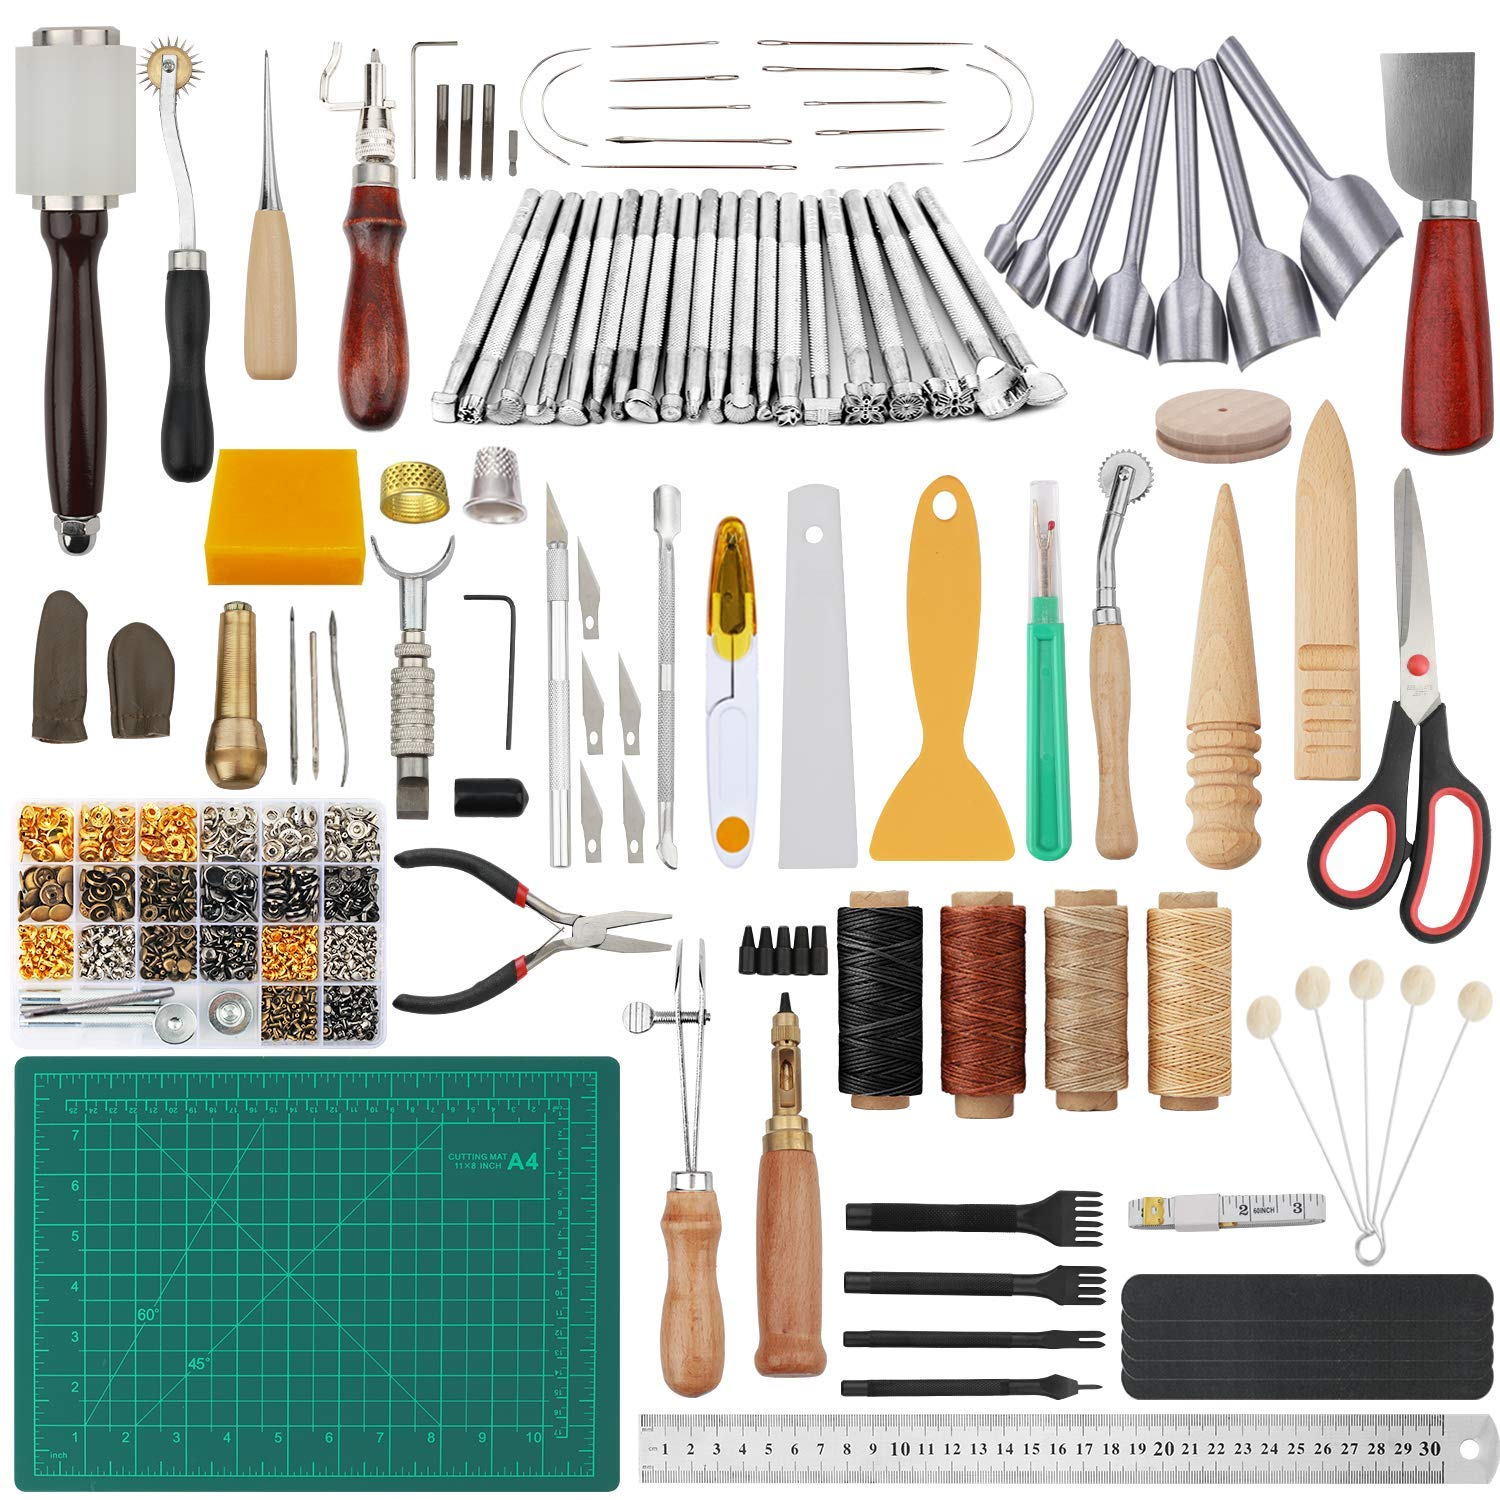 Dorhui 356 Pieces Leathercraft Tools Kit, Leather Working Tools and Supplies, Leather Craft Stamping Tools, Rivets Tools, Stitching Groover, Prong Punch, Leather Working Saddle Making Tools by Dorhui (Image #1)